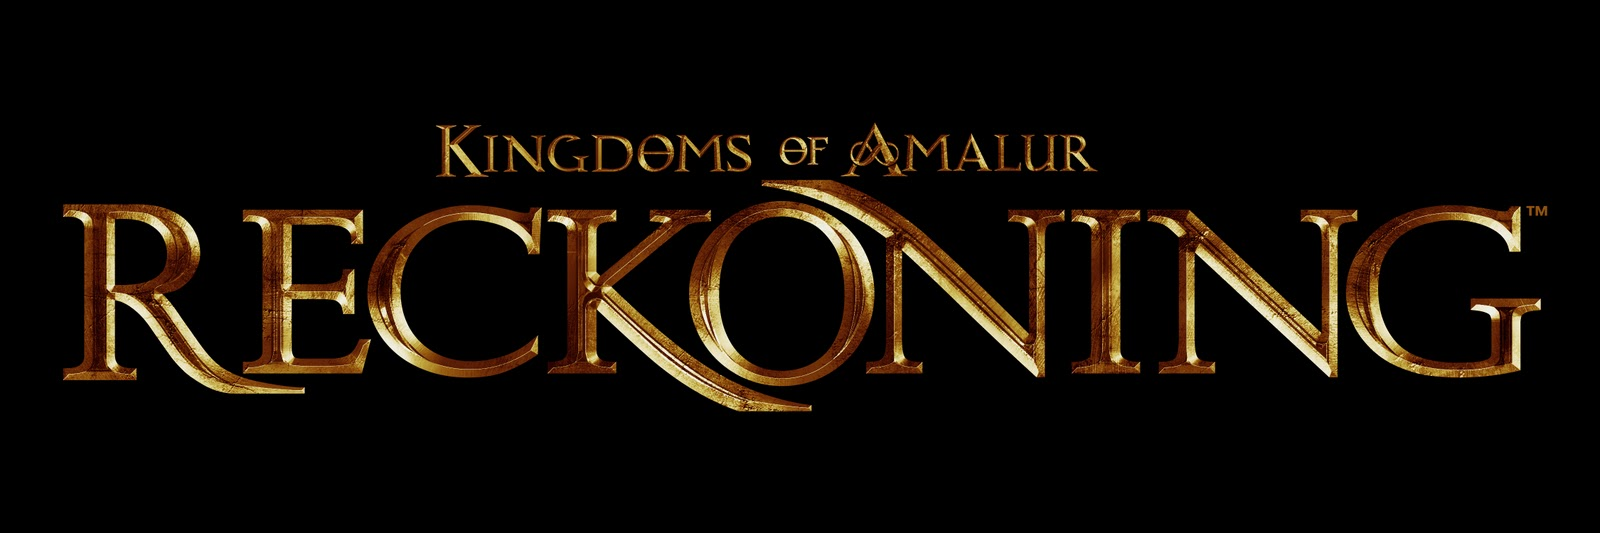 Soldierscuzzy/Kingdoms of Amalur: Reckoning Review Roundup